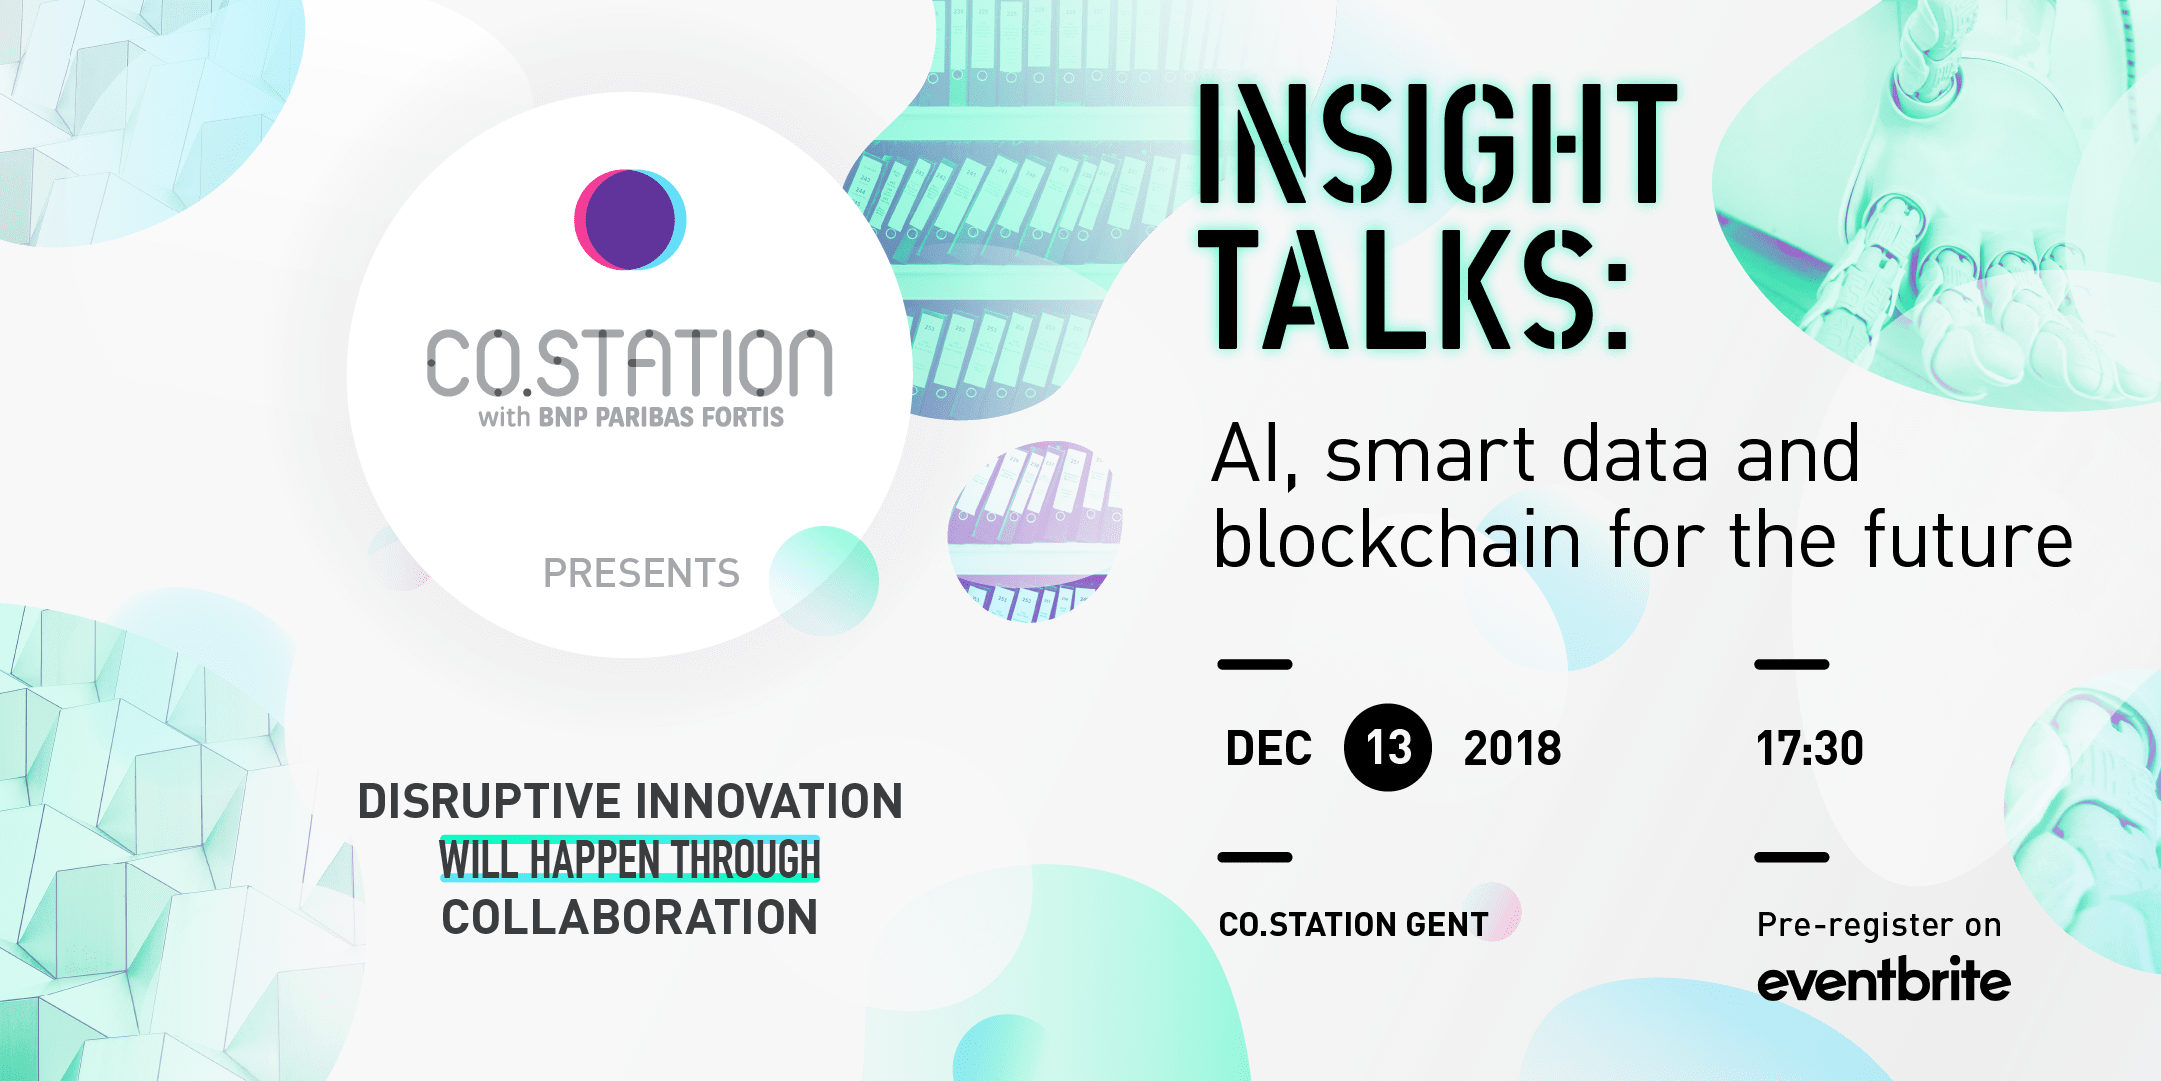 Co.Station | Insight Talk: AI, Smart Data and Blockchain on Dec 13